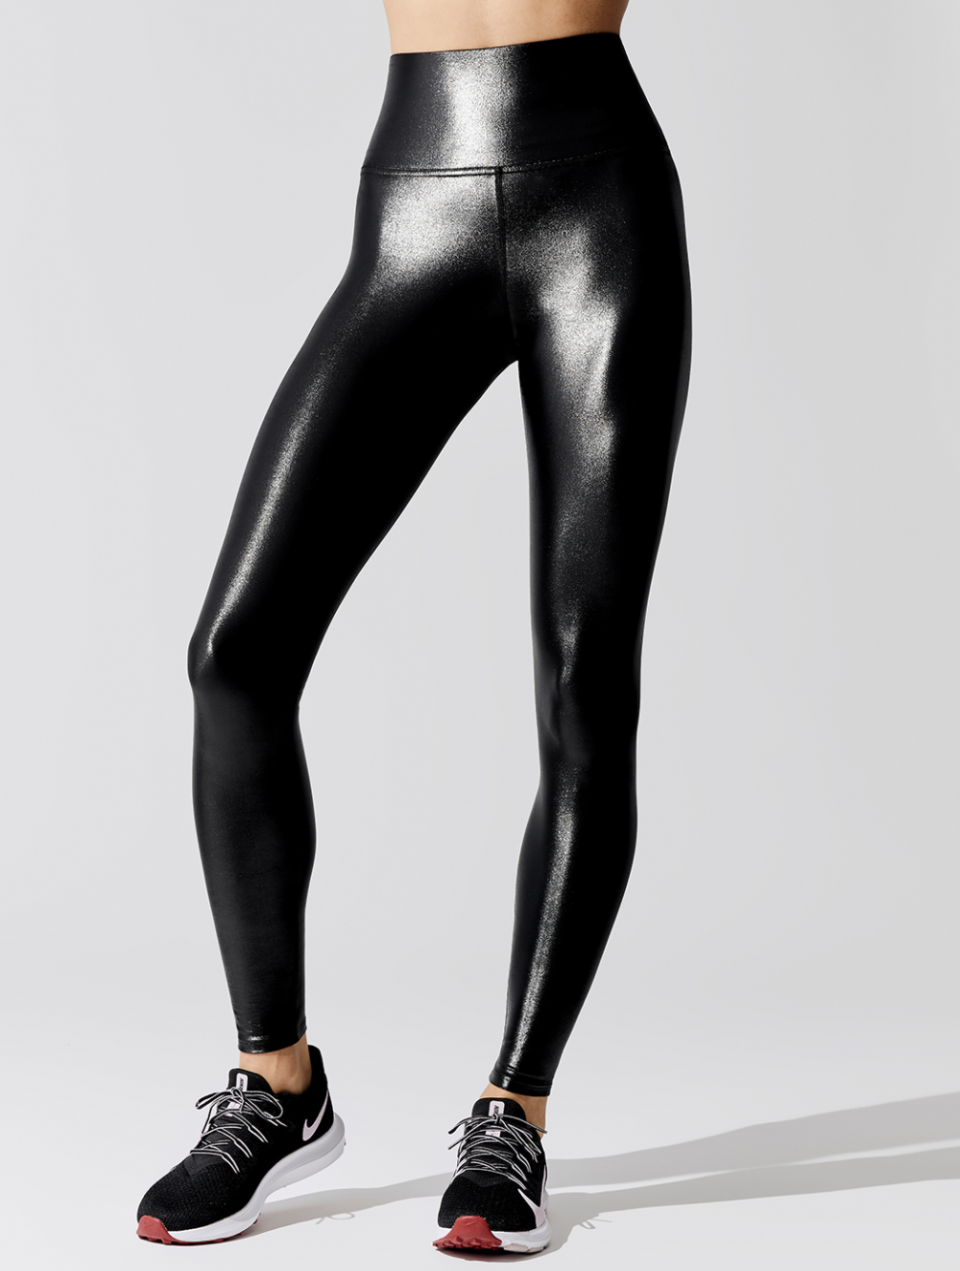 Carbon38 High Rise Full-Length Legging in Takara Shine